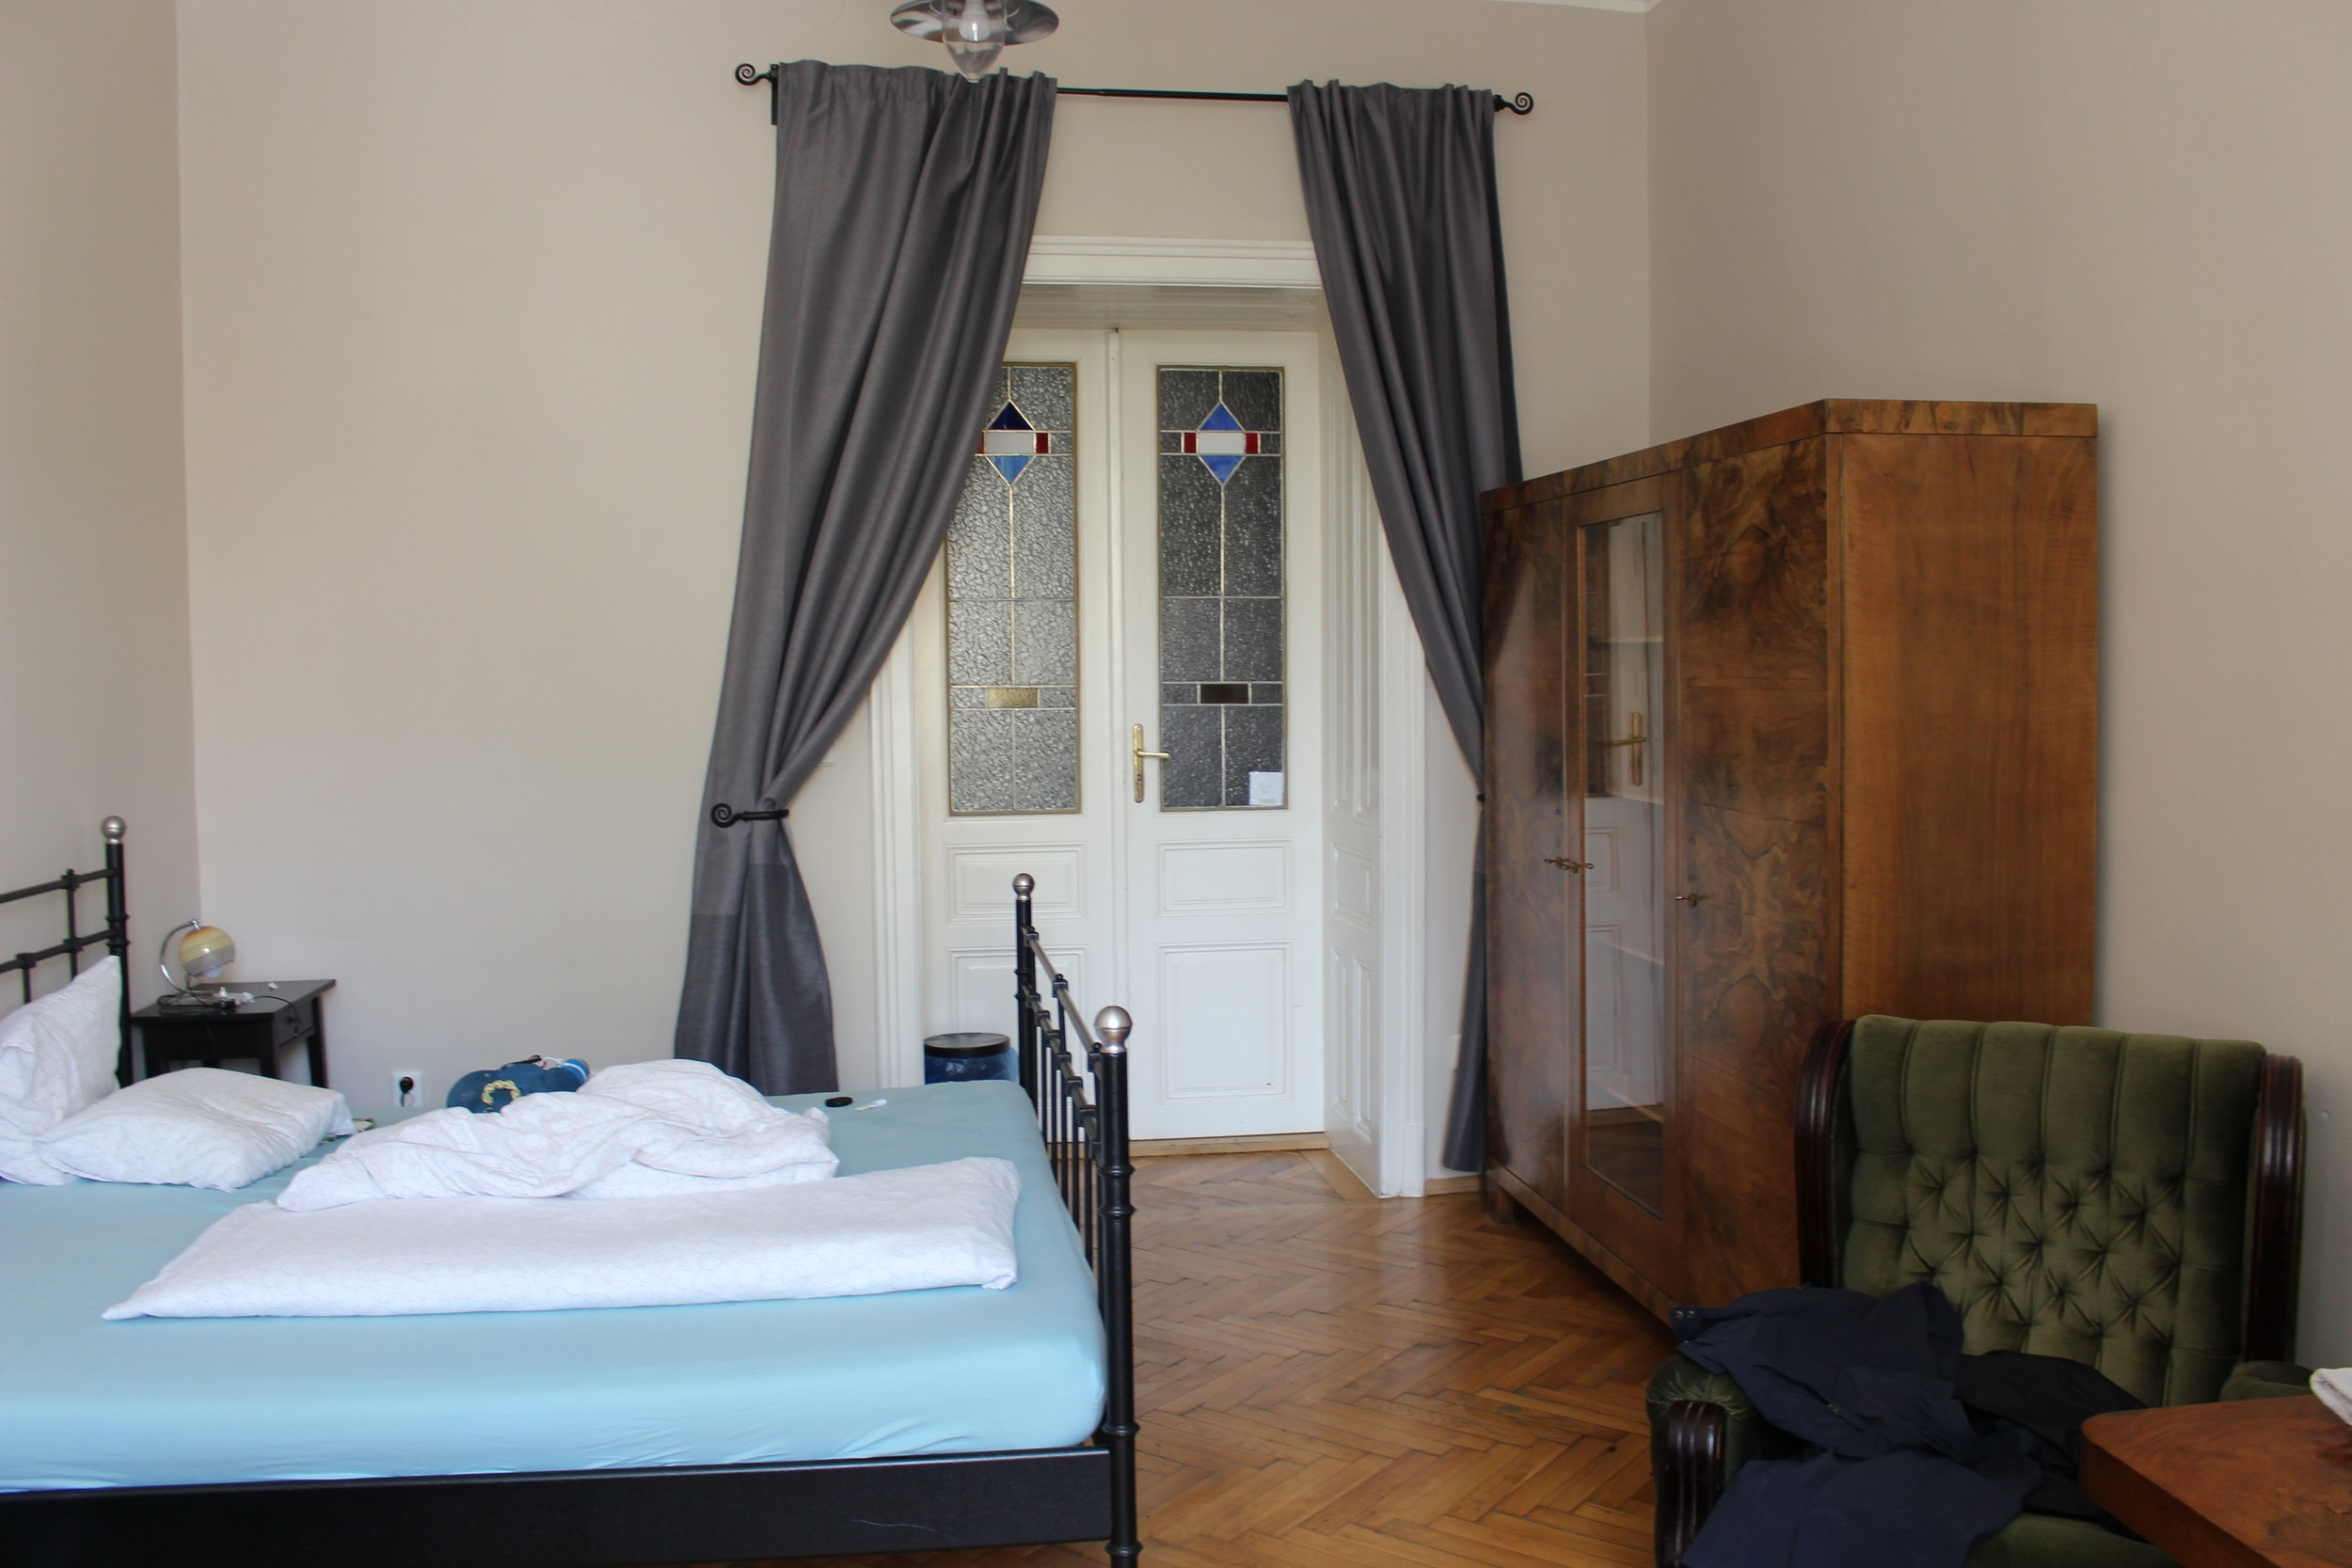 Private Room at Jacob Brno